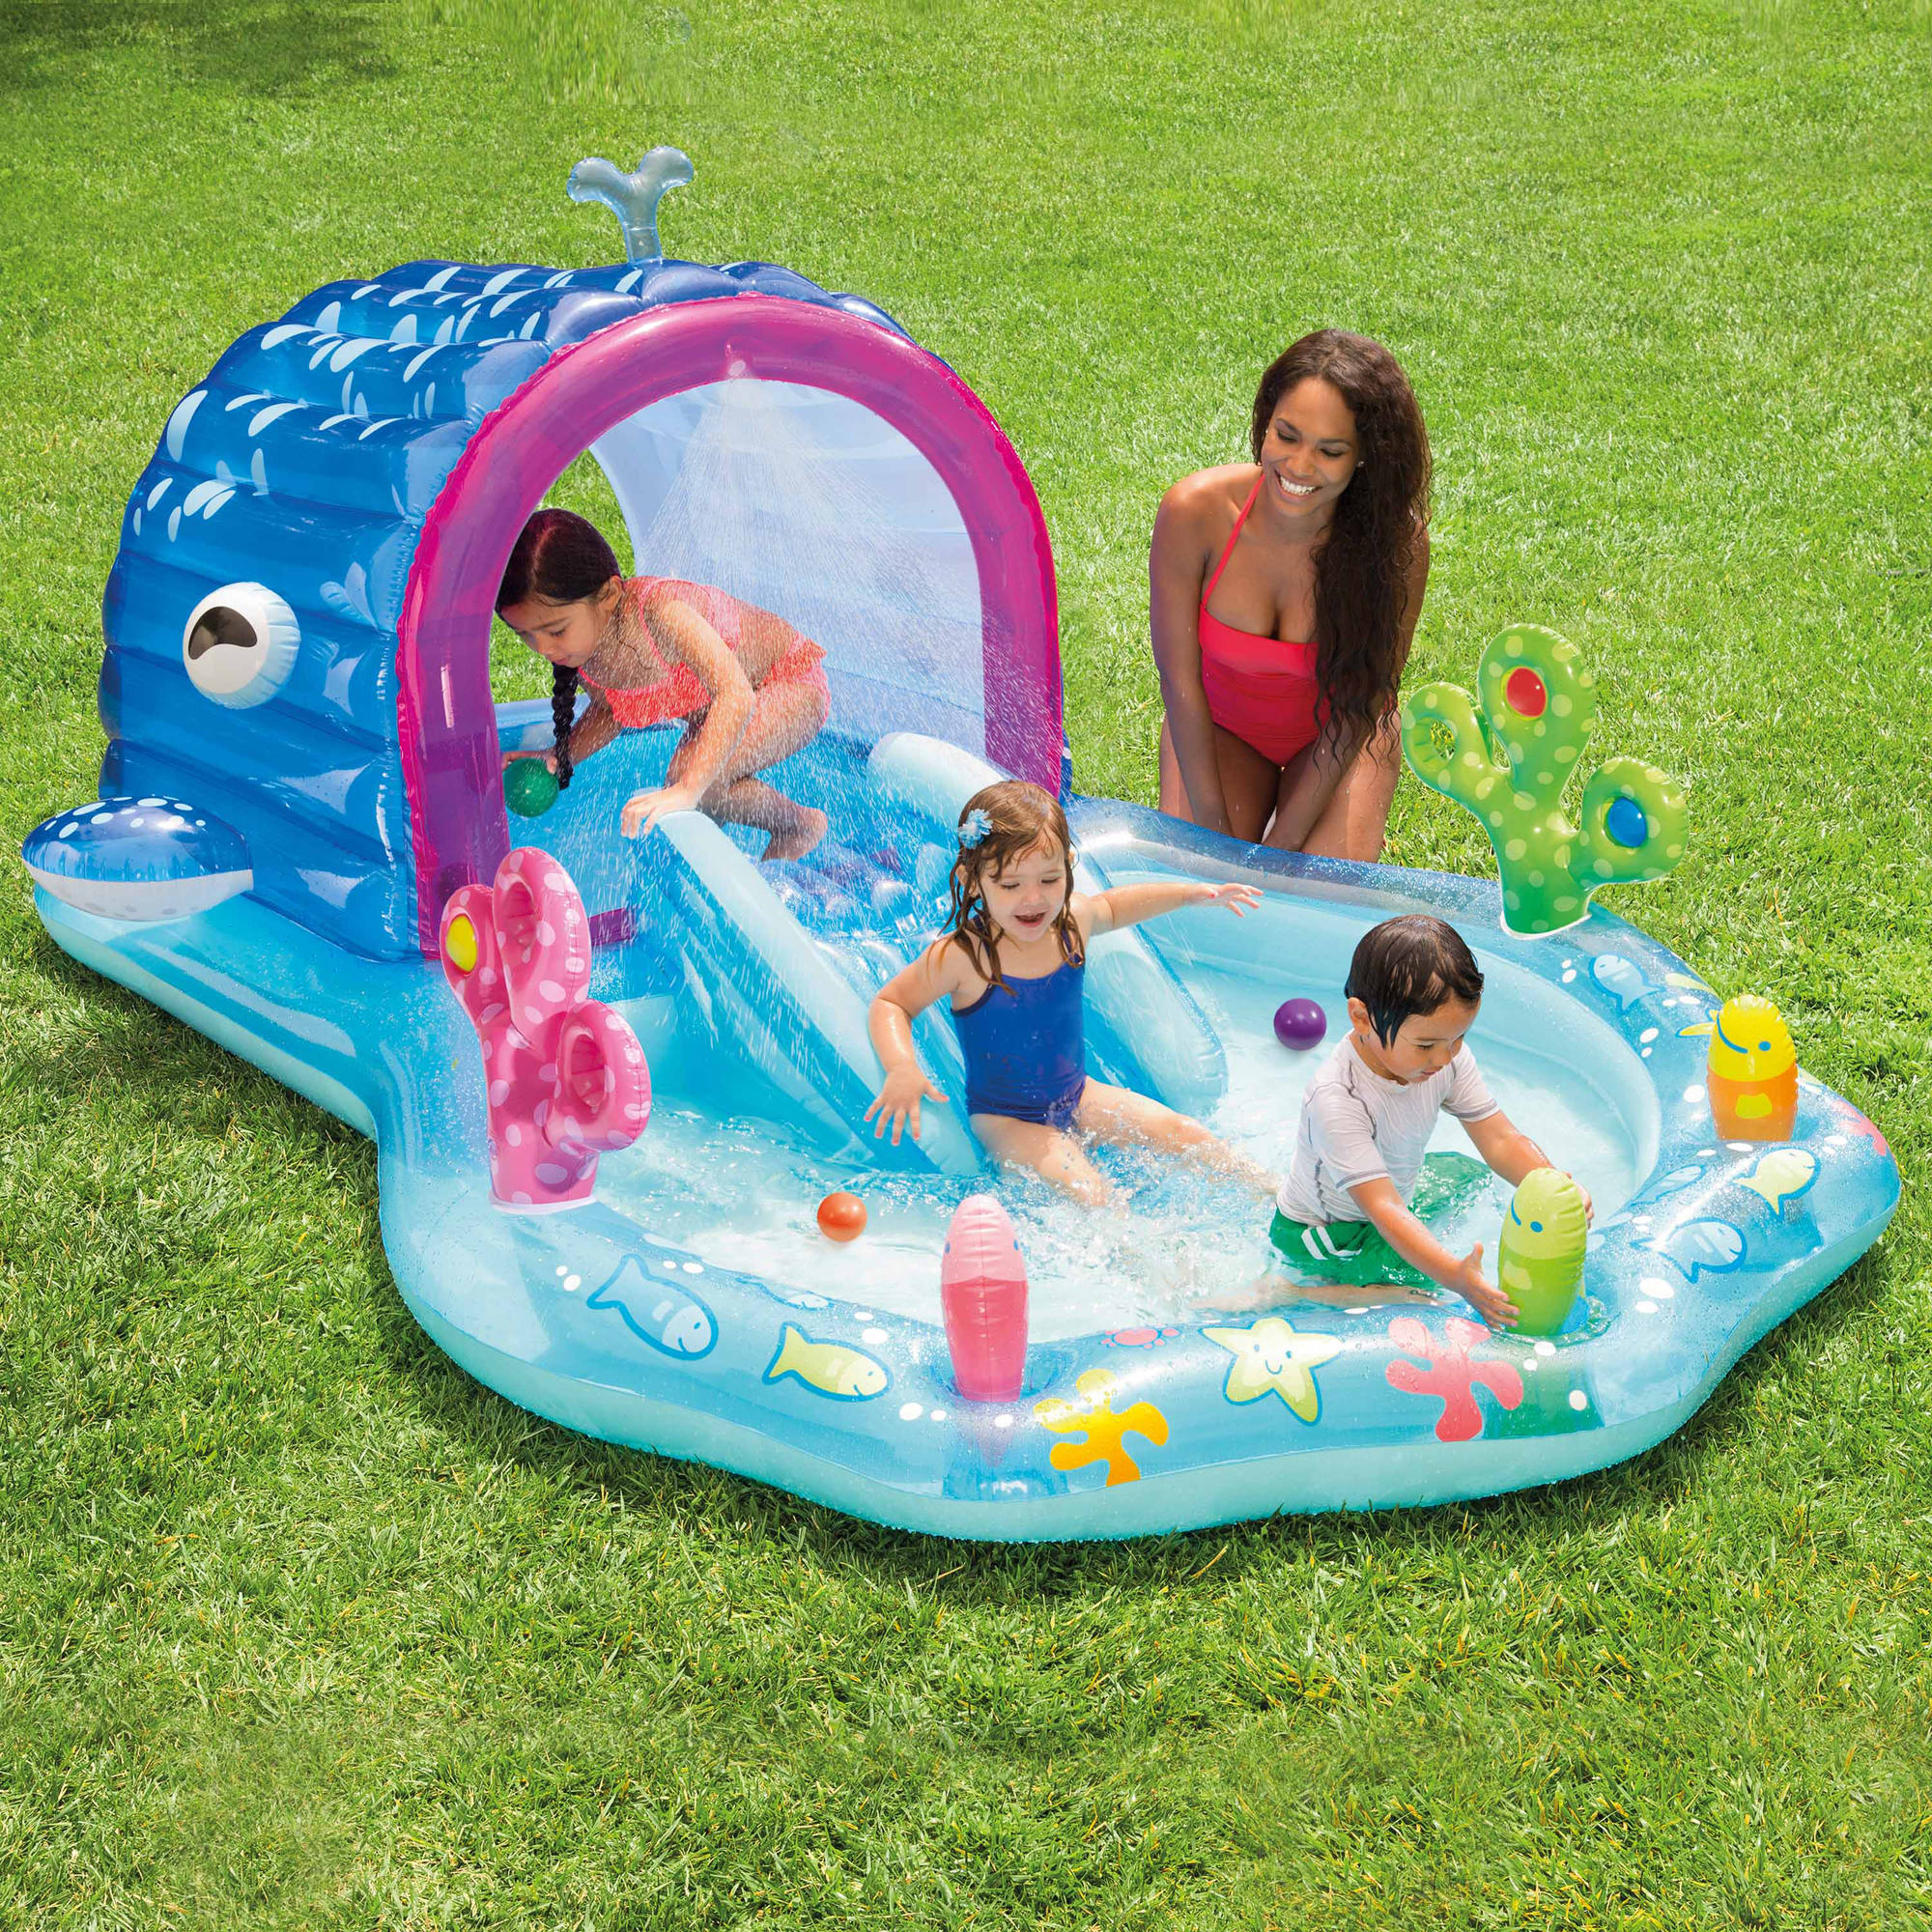 Intex Inflatable Whale Play Center with Sprayer Walmart